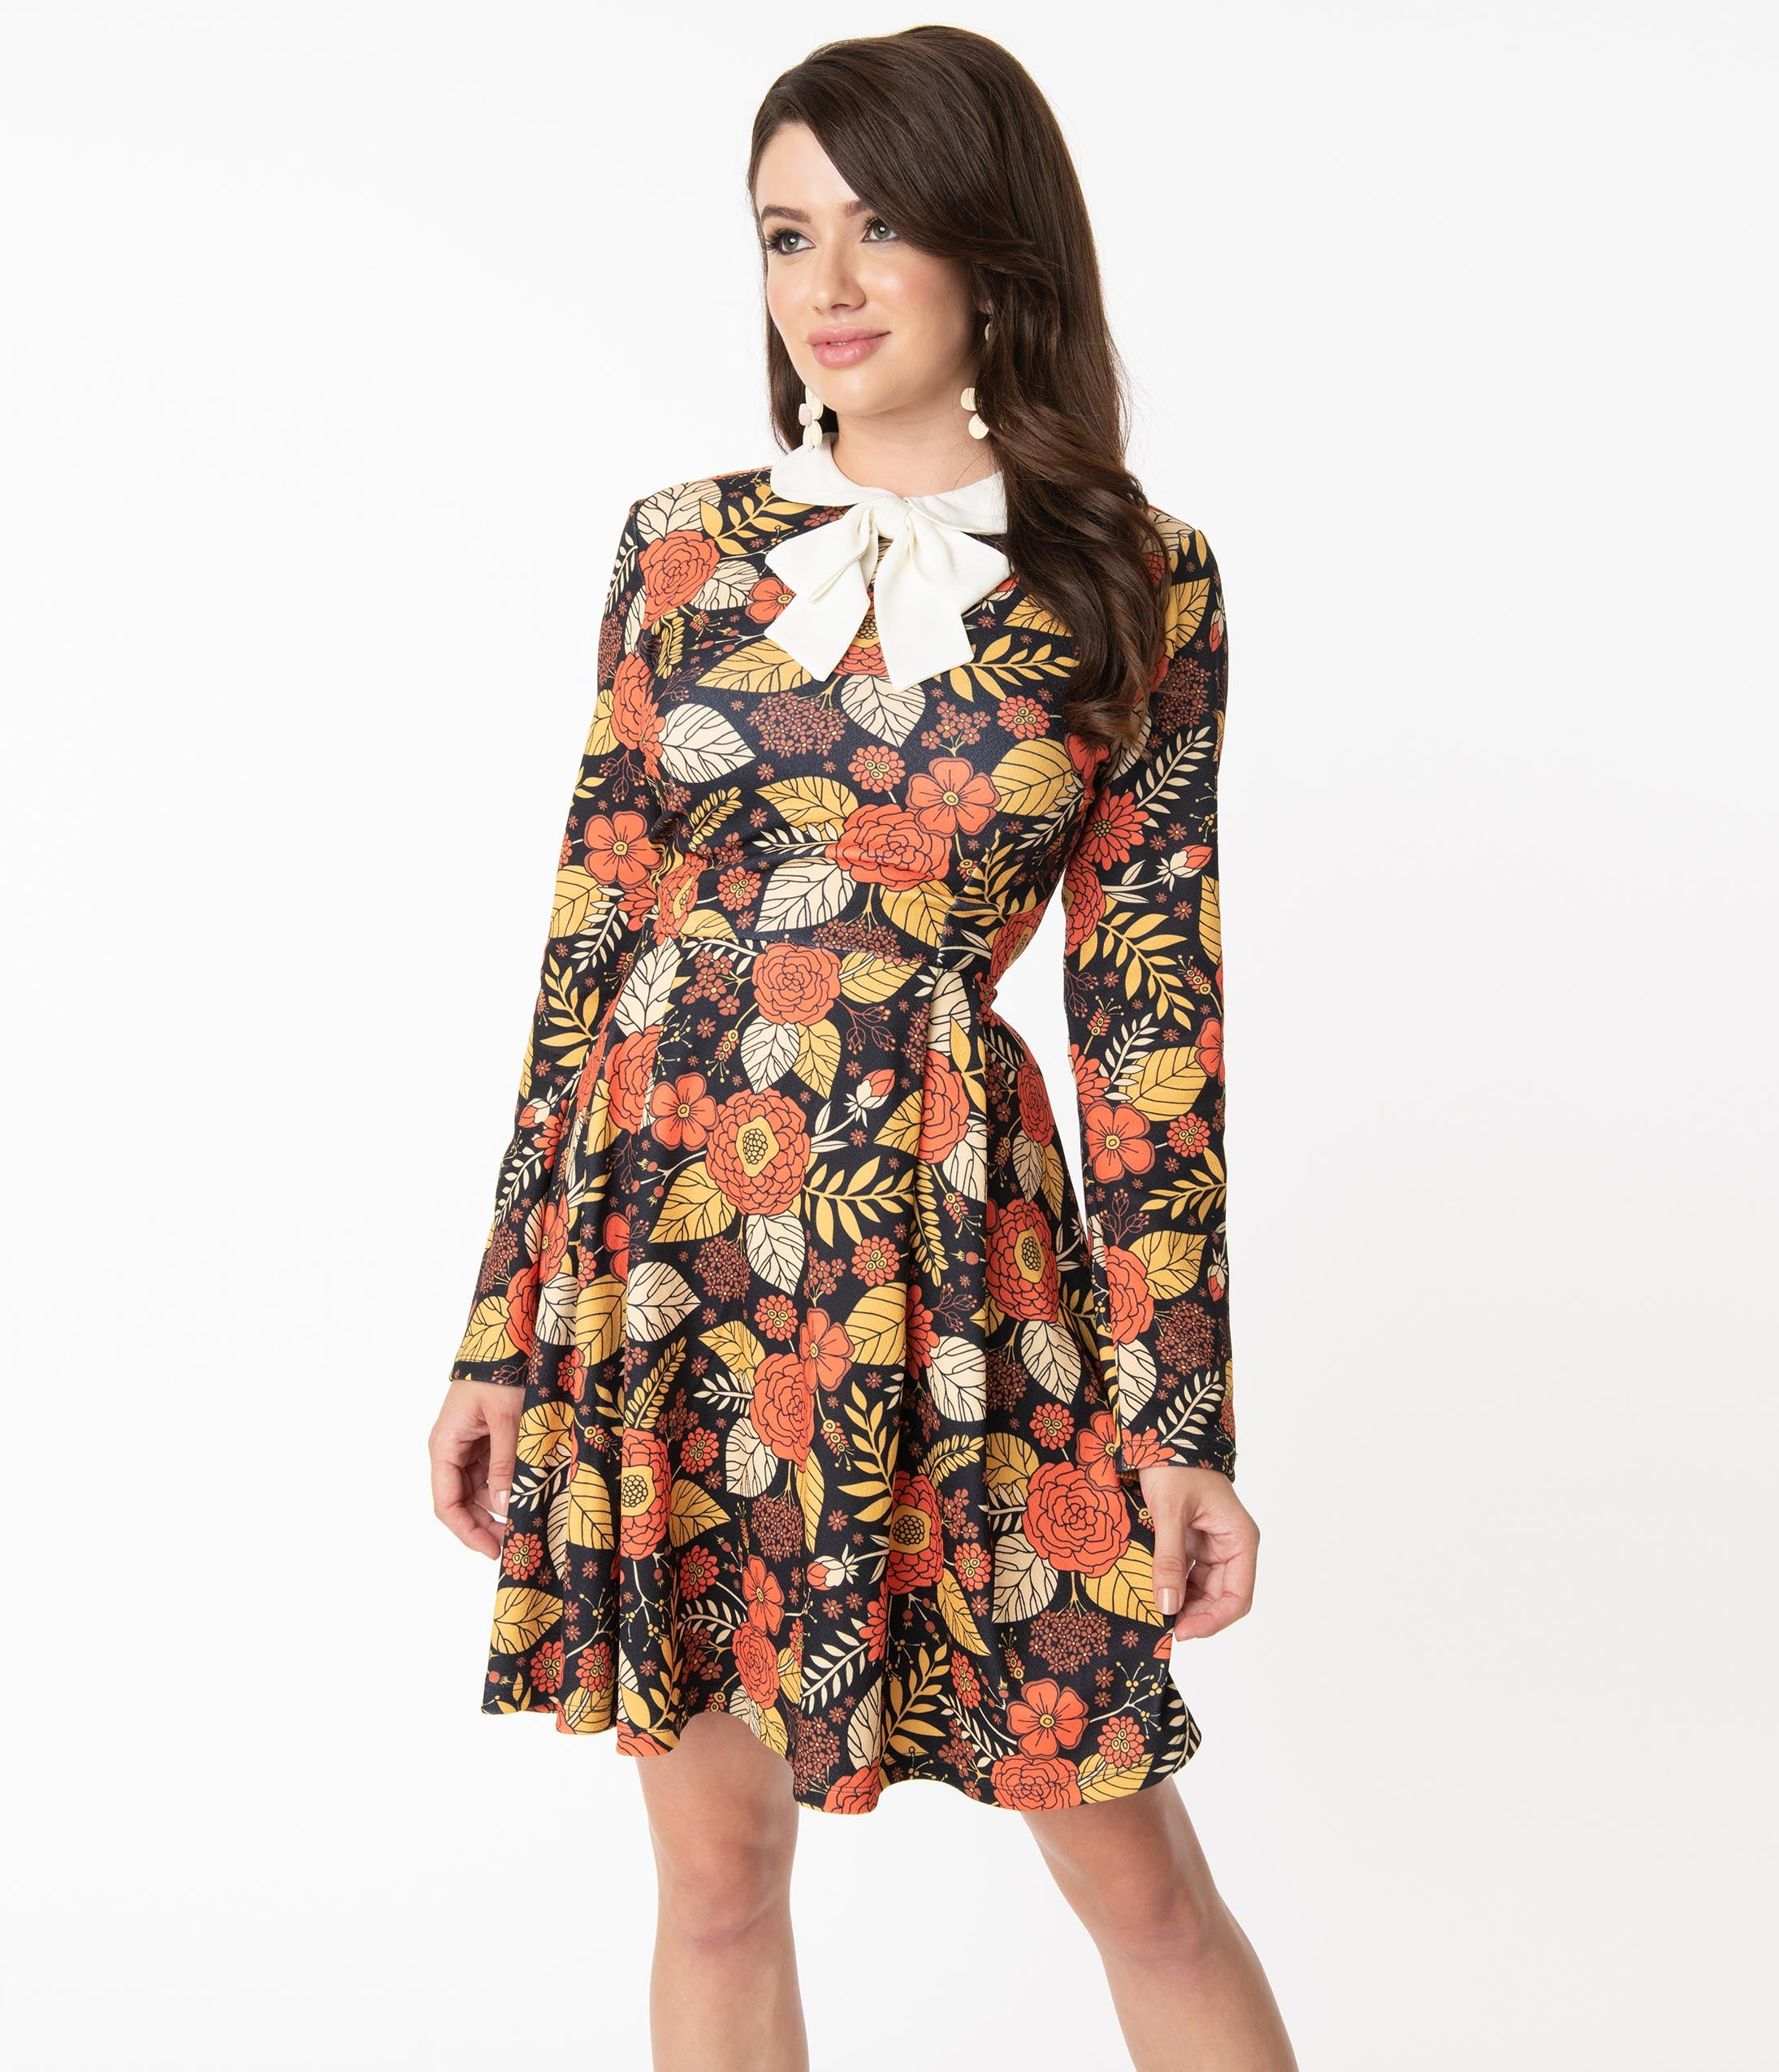 Vintage Style Dresses | Vintage Inspired Dresses Smak Parlour Orange Autumn Floral Jet Setter Fit  Flare Dress $68.00 AT vintagedancer.com